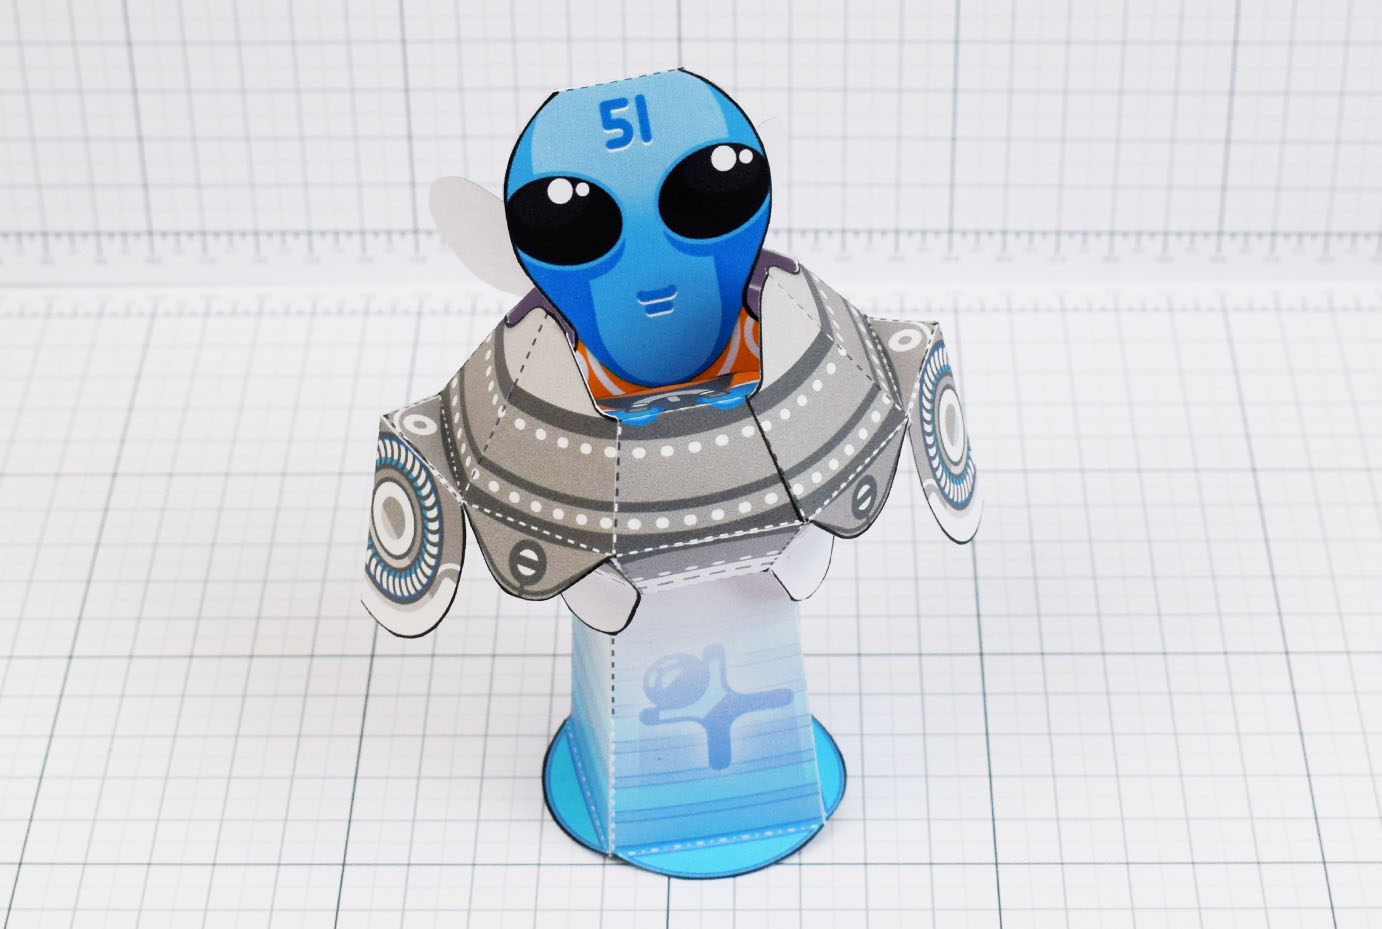 PTI - Alien abduction UFO paper toy image - main